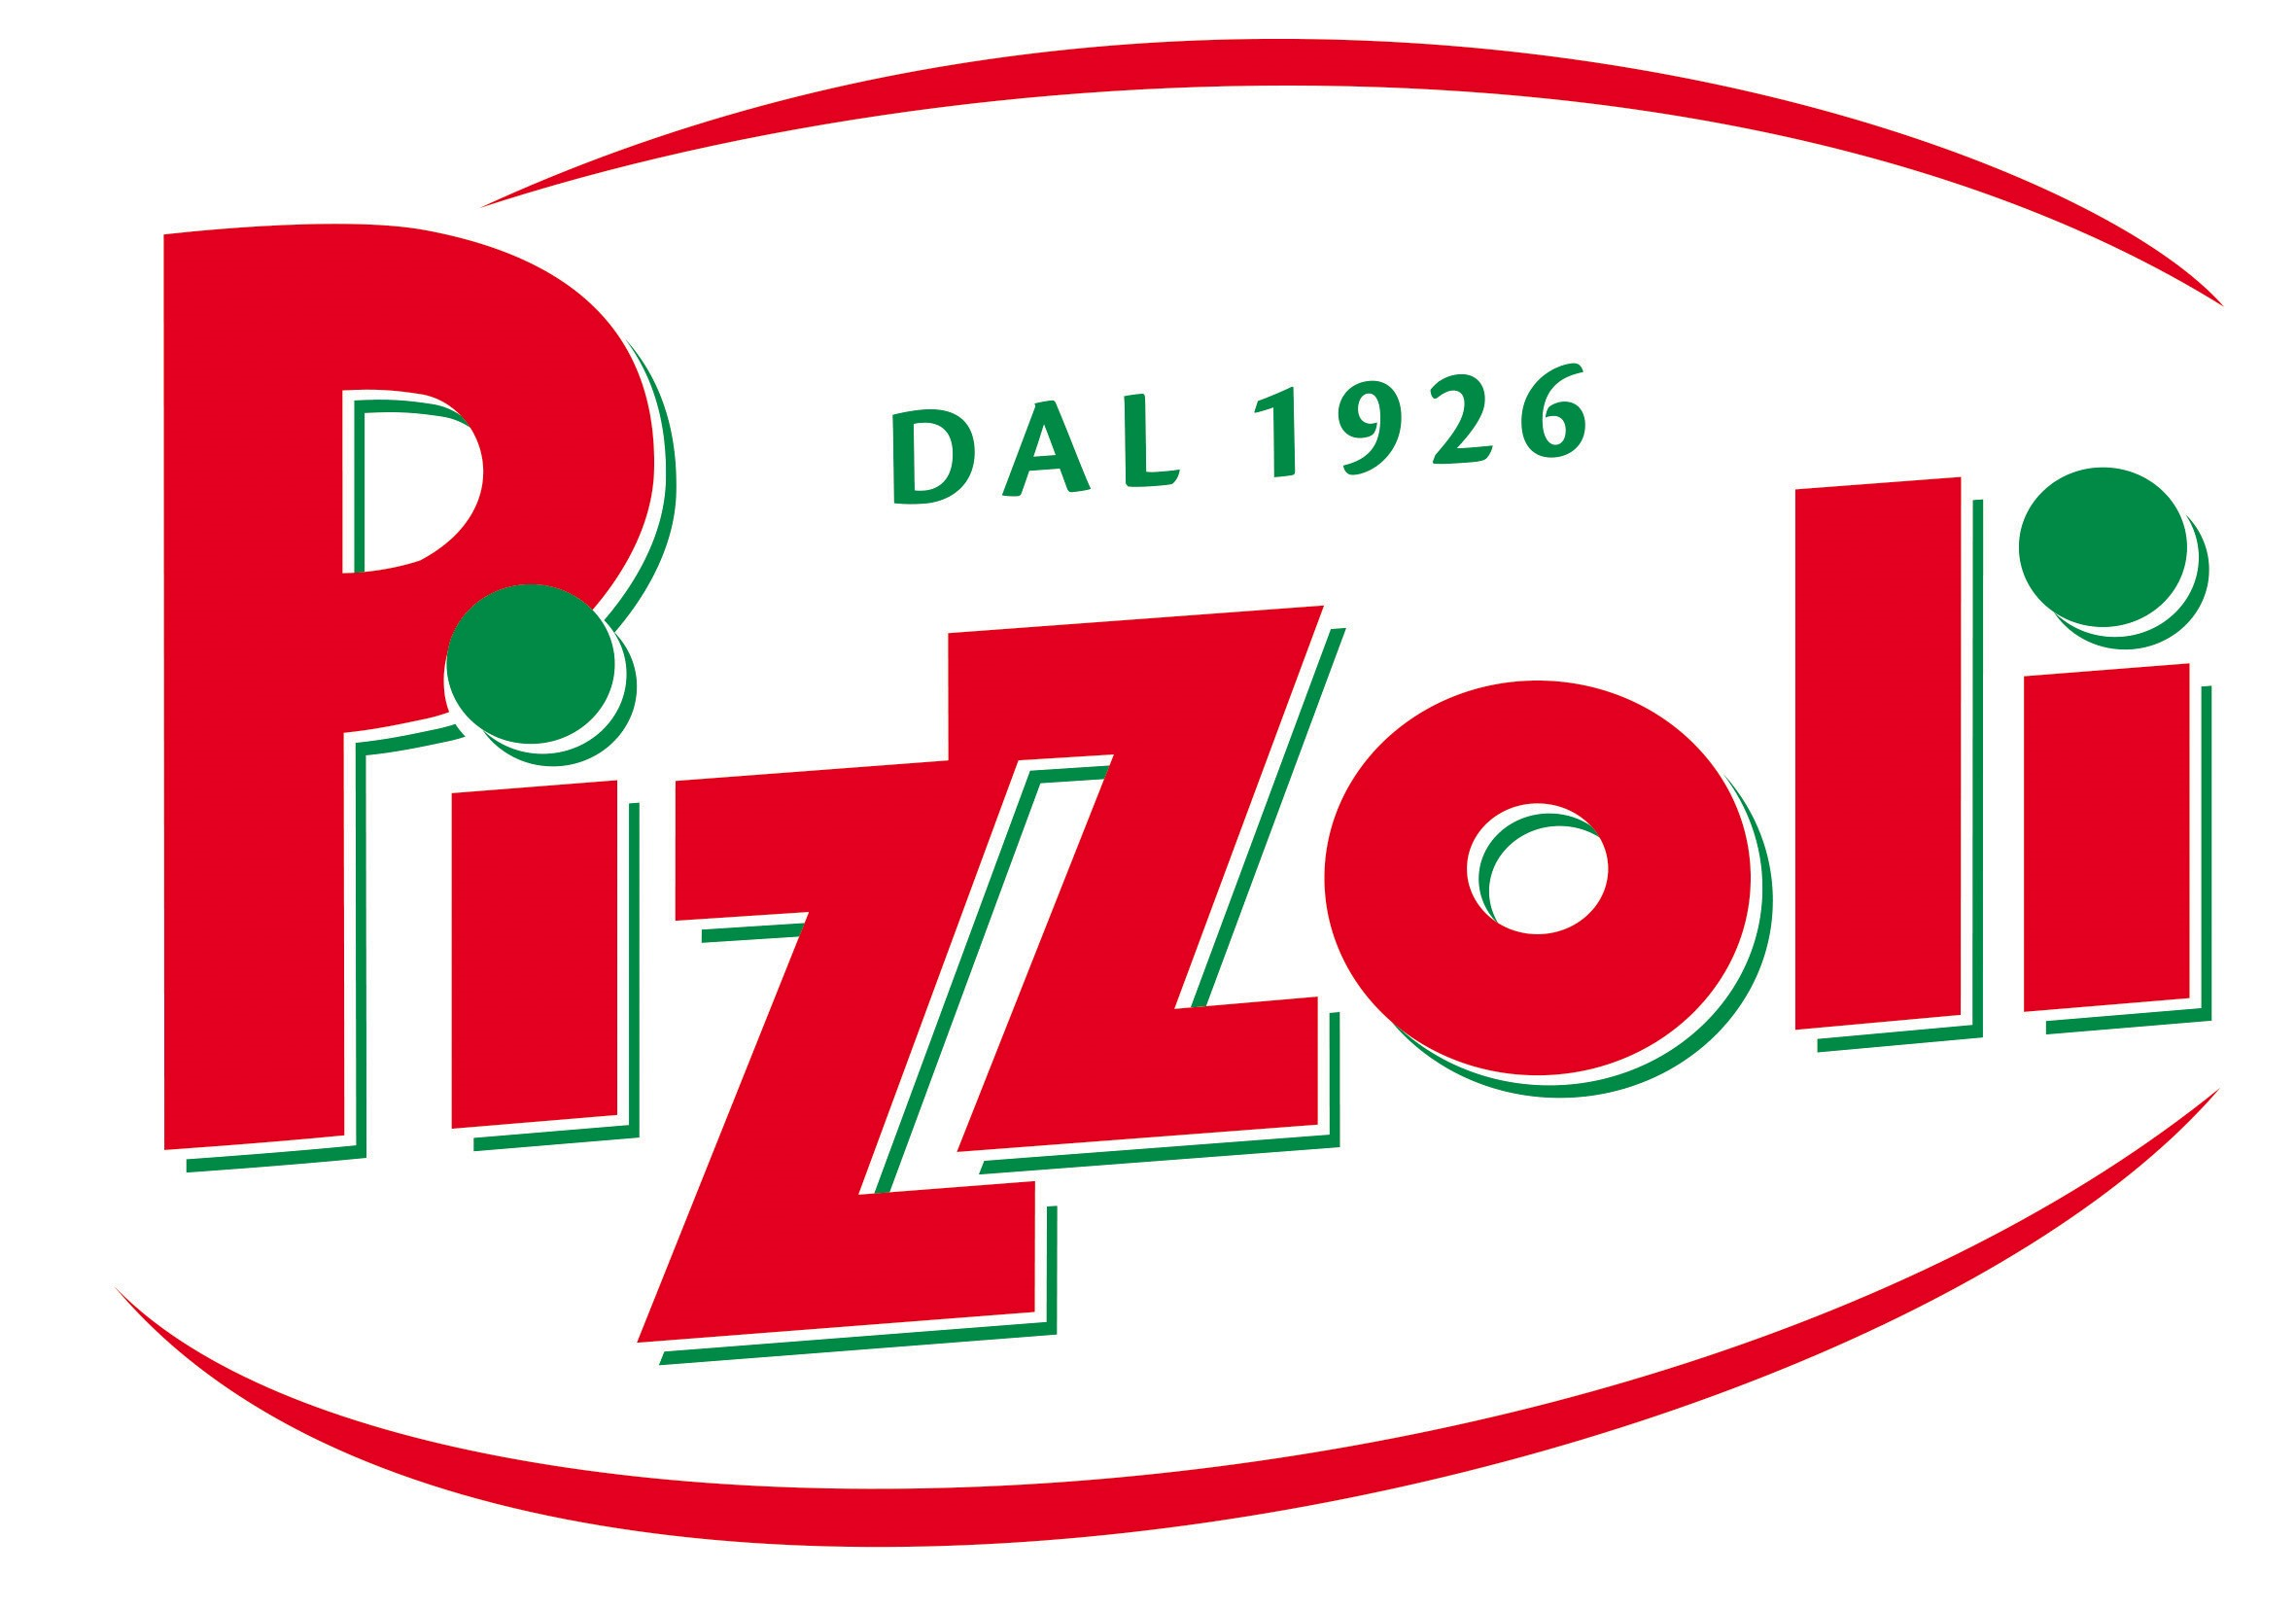 Pizzoli S.p.A.